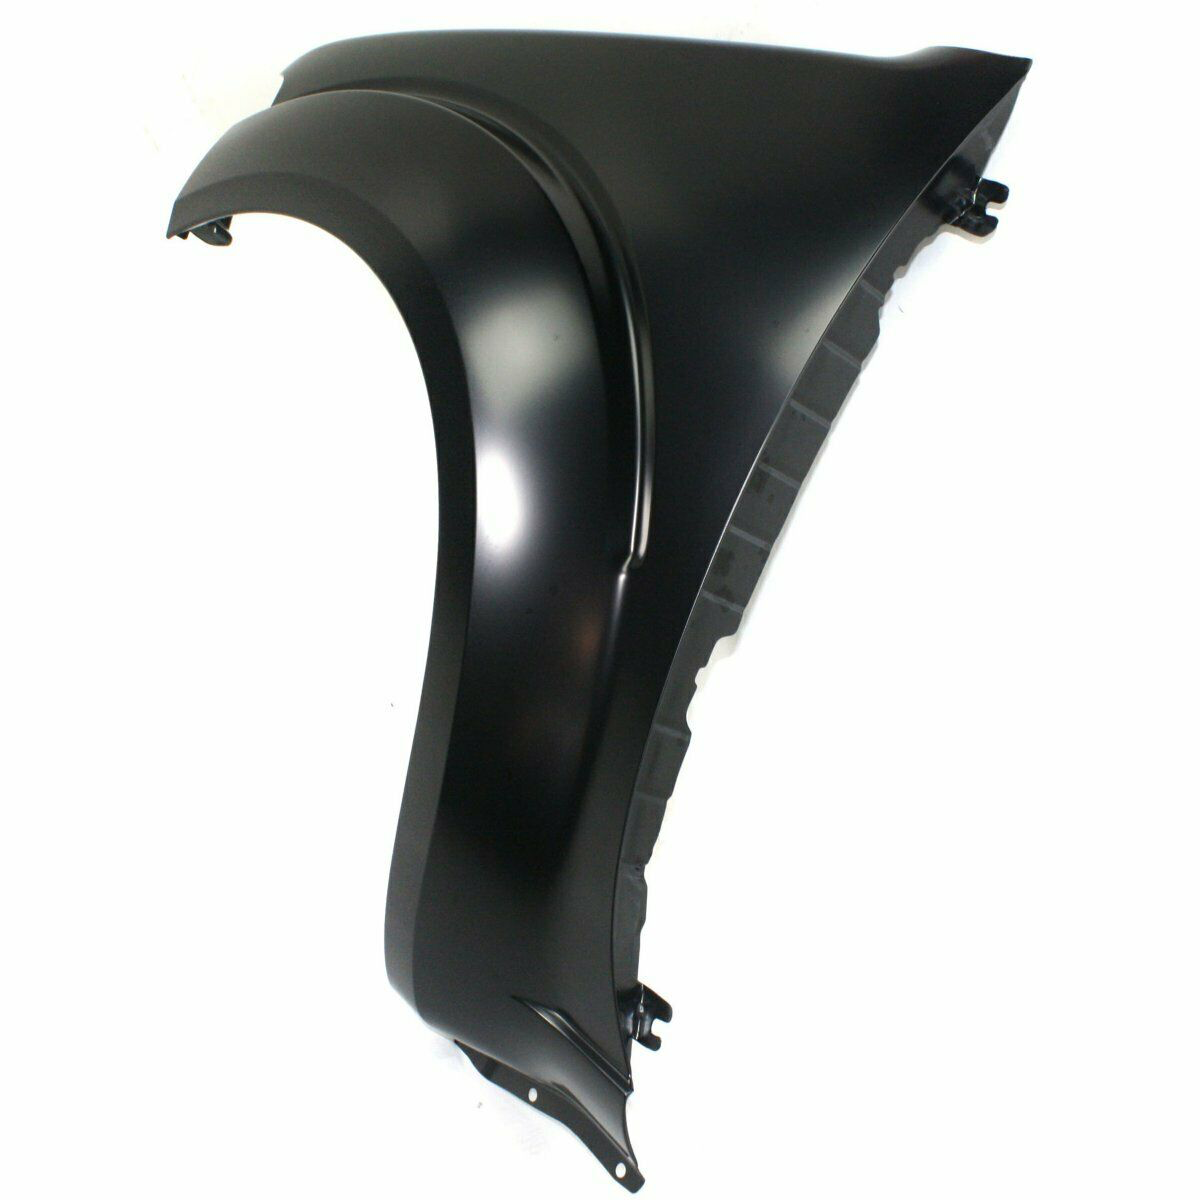 2005-2008 Nissan Pathfinder Left Fender Painted to Match